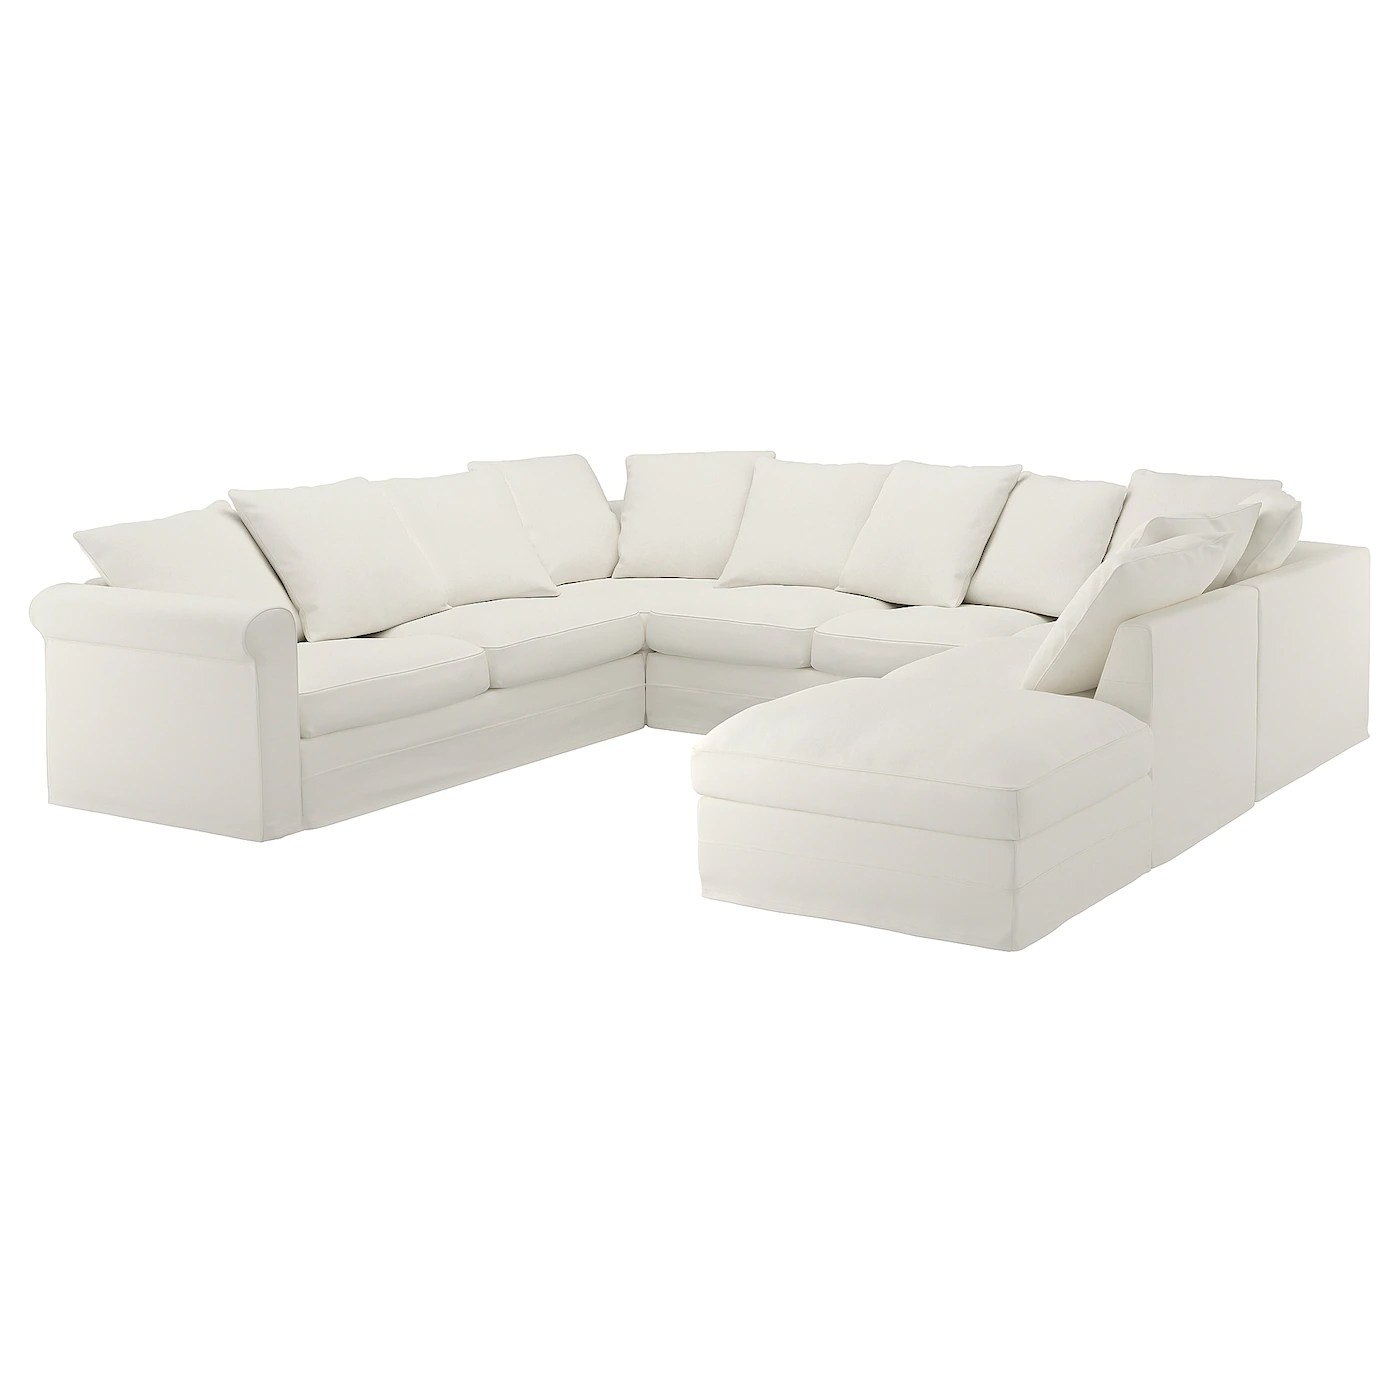 u sofa sectional sofas in phoenix az gronlid shaped 6 seat with open end inseros white ikea